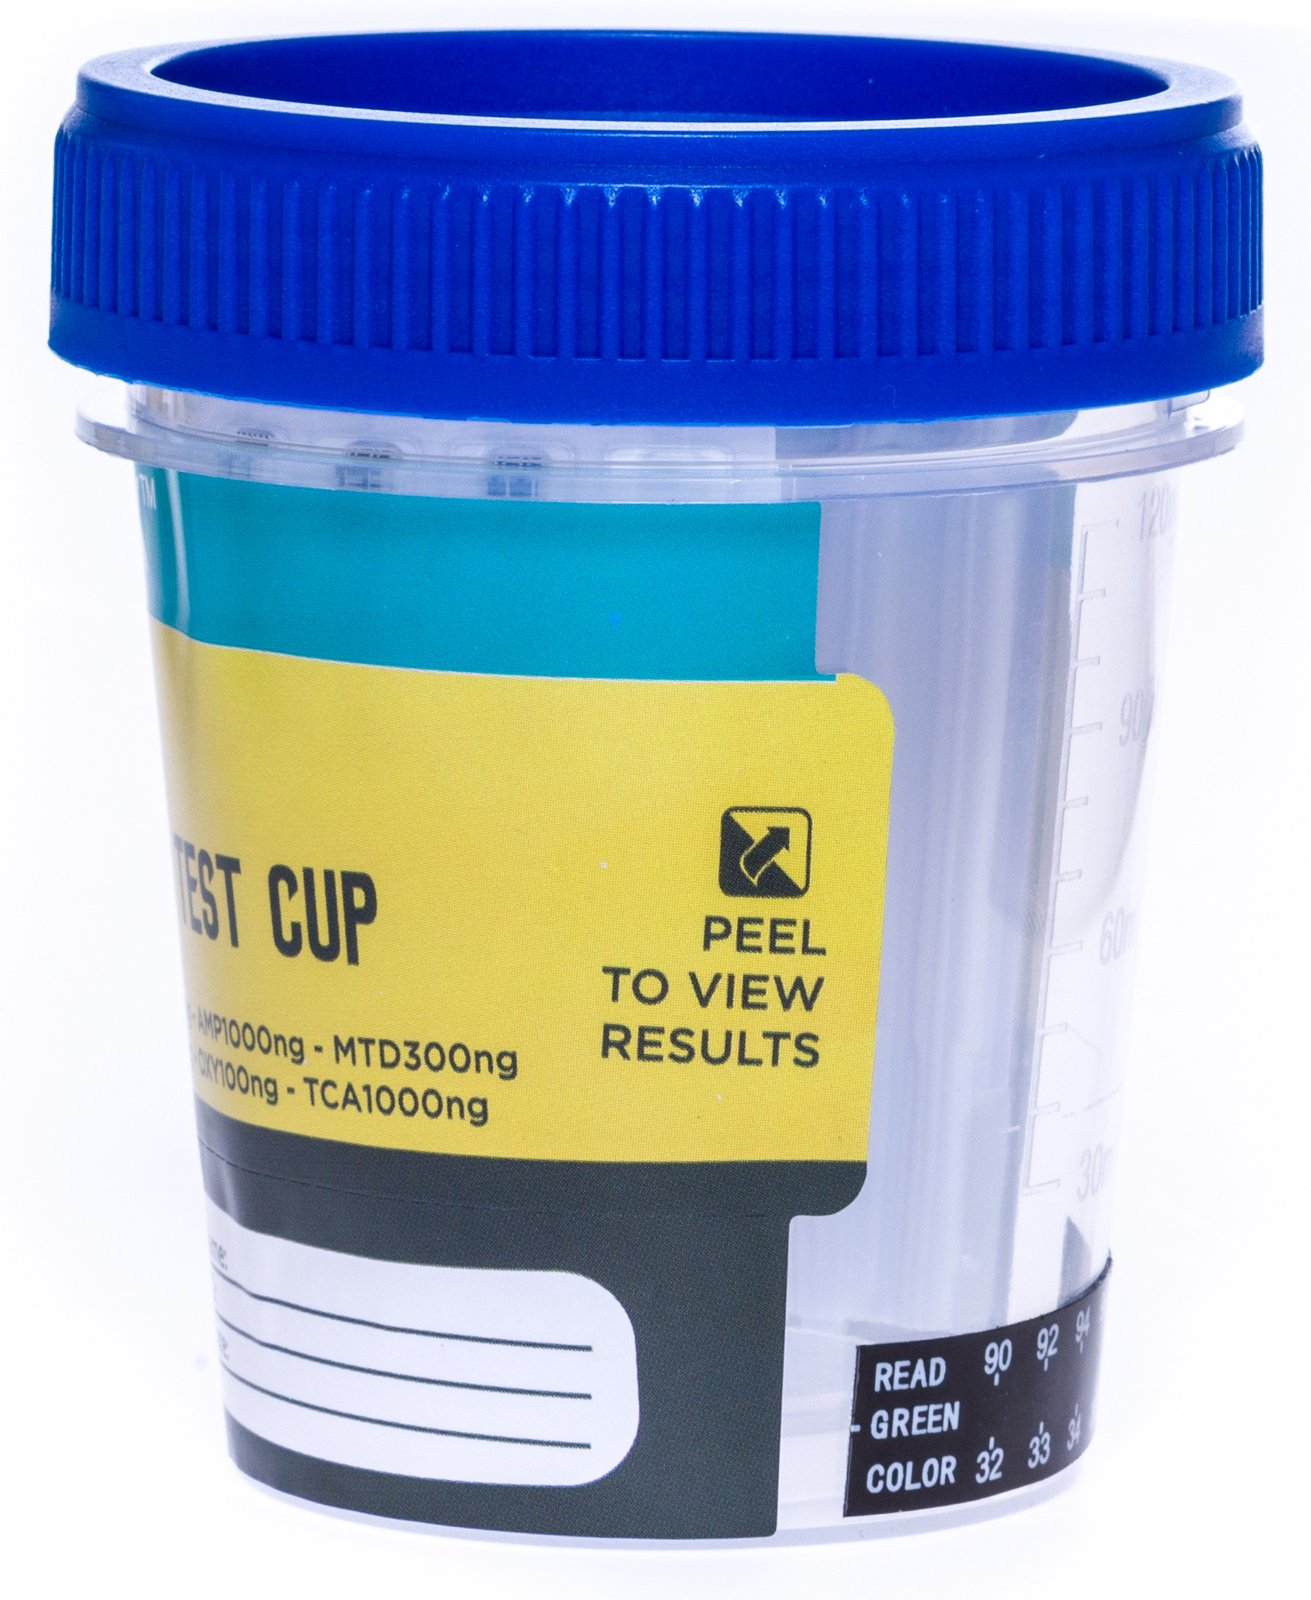 Care Check Sterile 12 Panel Multi Drug Screen Test Urine Sample Collection Cups, (AMP, BZO, BAR, COC, MET, MDMA, MTD, MOP, OXY, PCP, THC and TCA) 5 Pack Individually Wrapped Drug Test Cups by Care Check (Image #6)